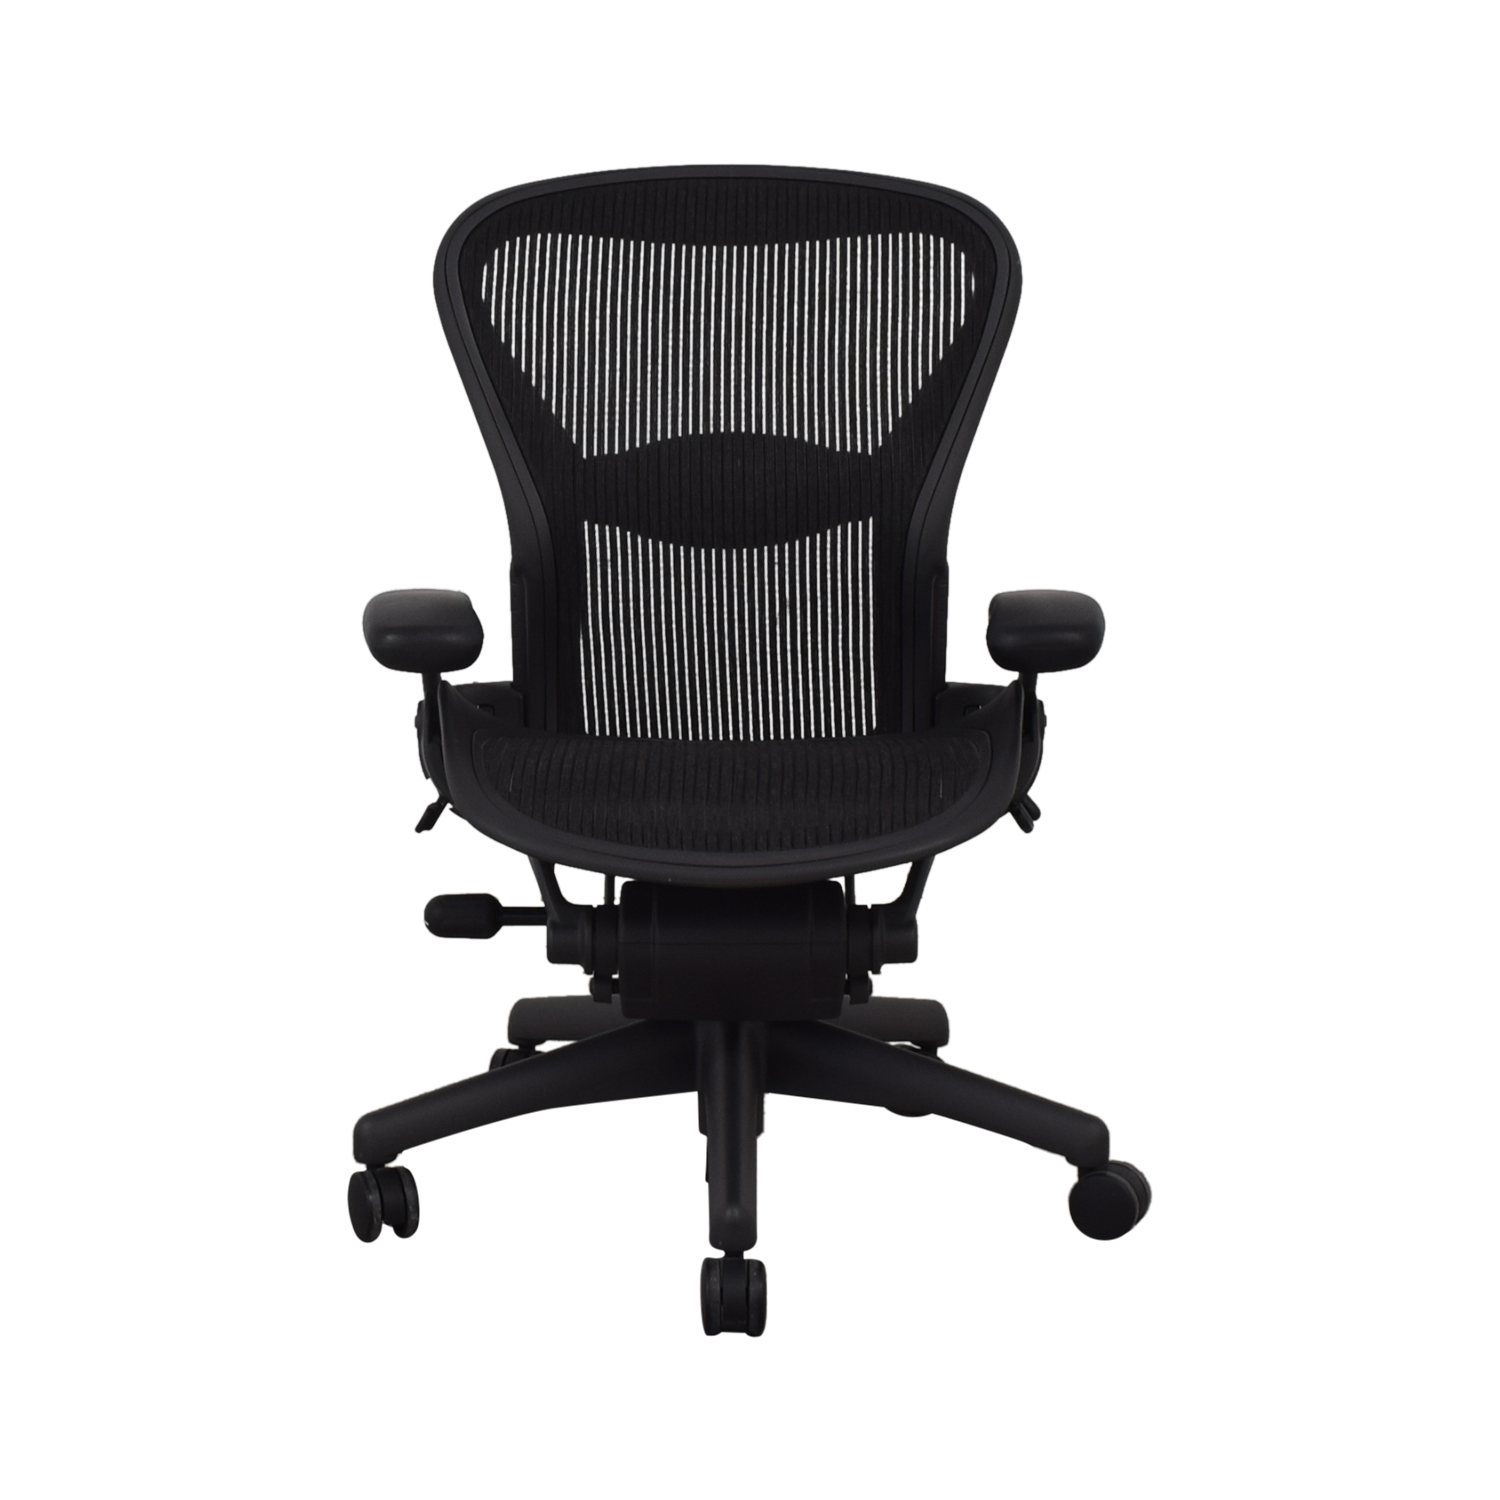 Herman Miller Herman Miller Aeron Medium Classic Size B Office Chair on sale